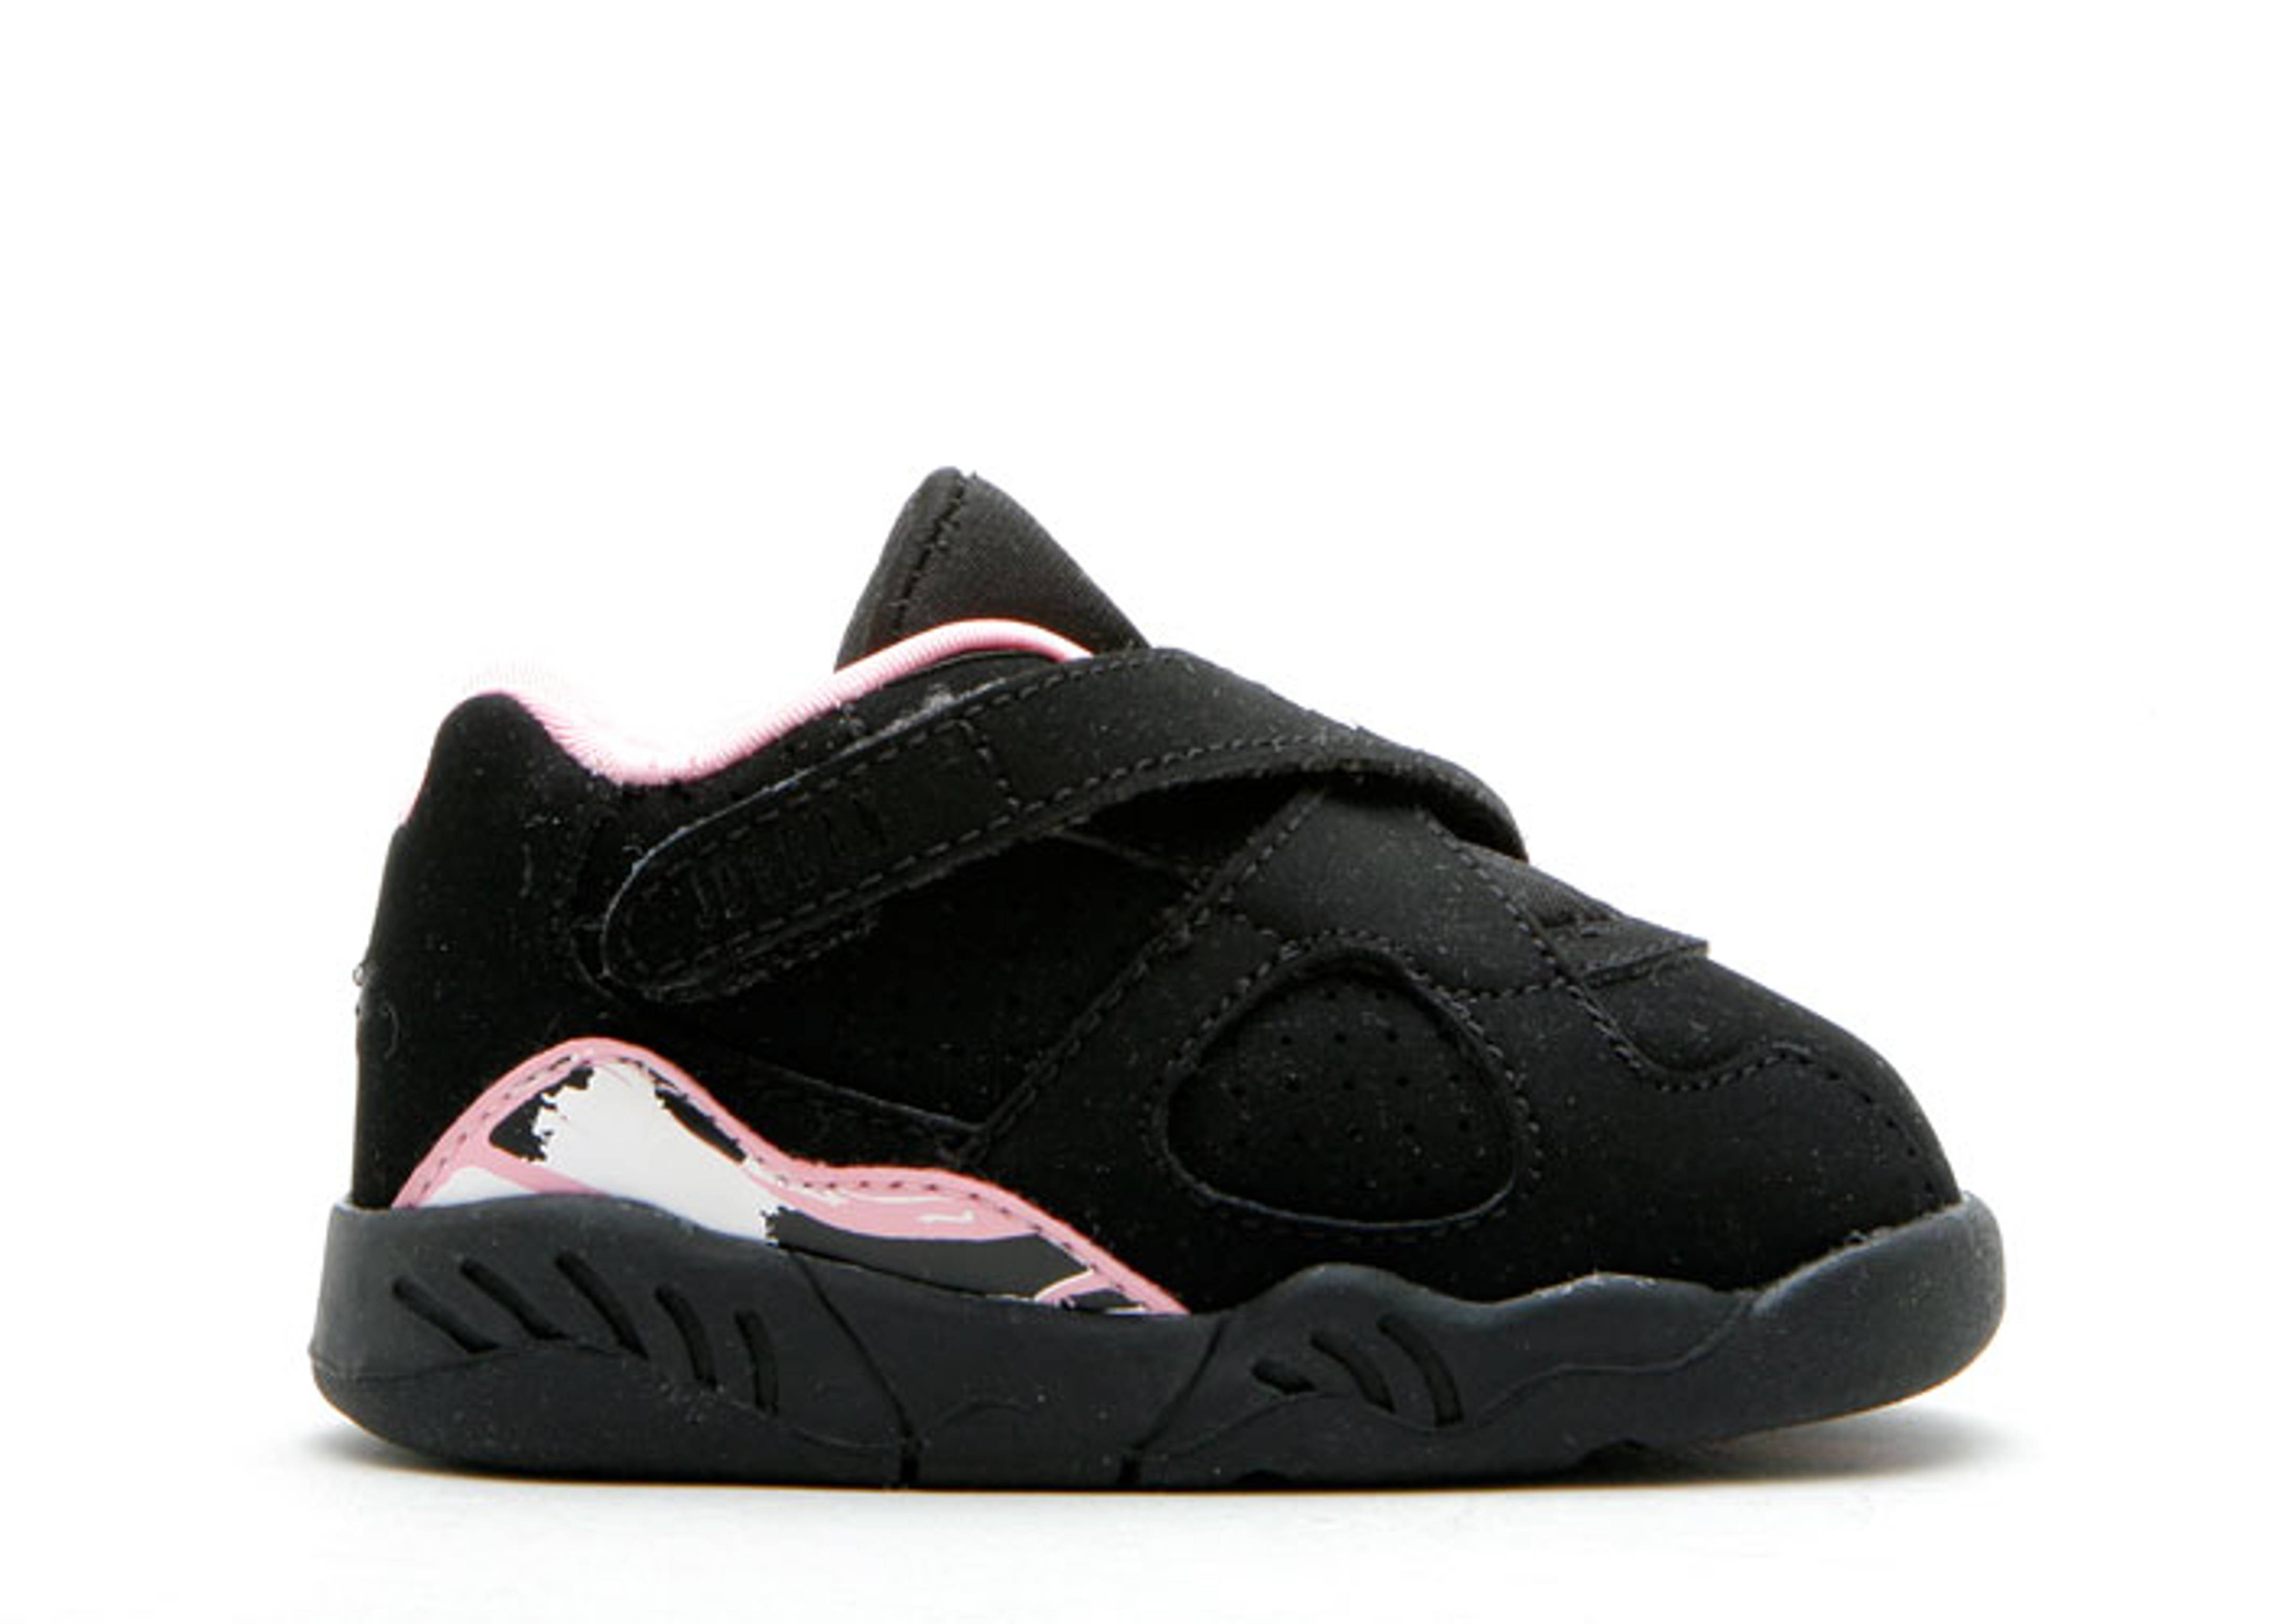 8 Retro Low (td) - Air Jordan - 317641 061 - black/real pink